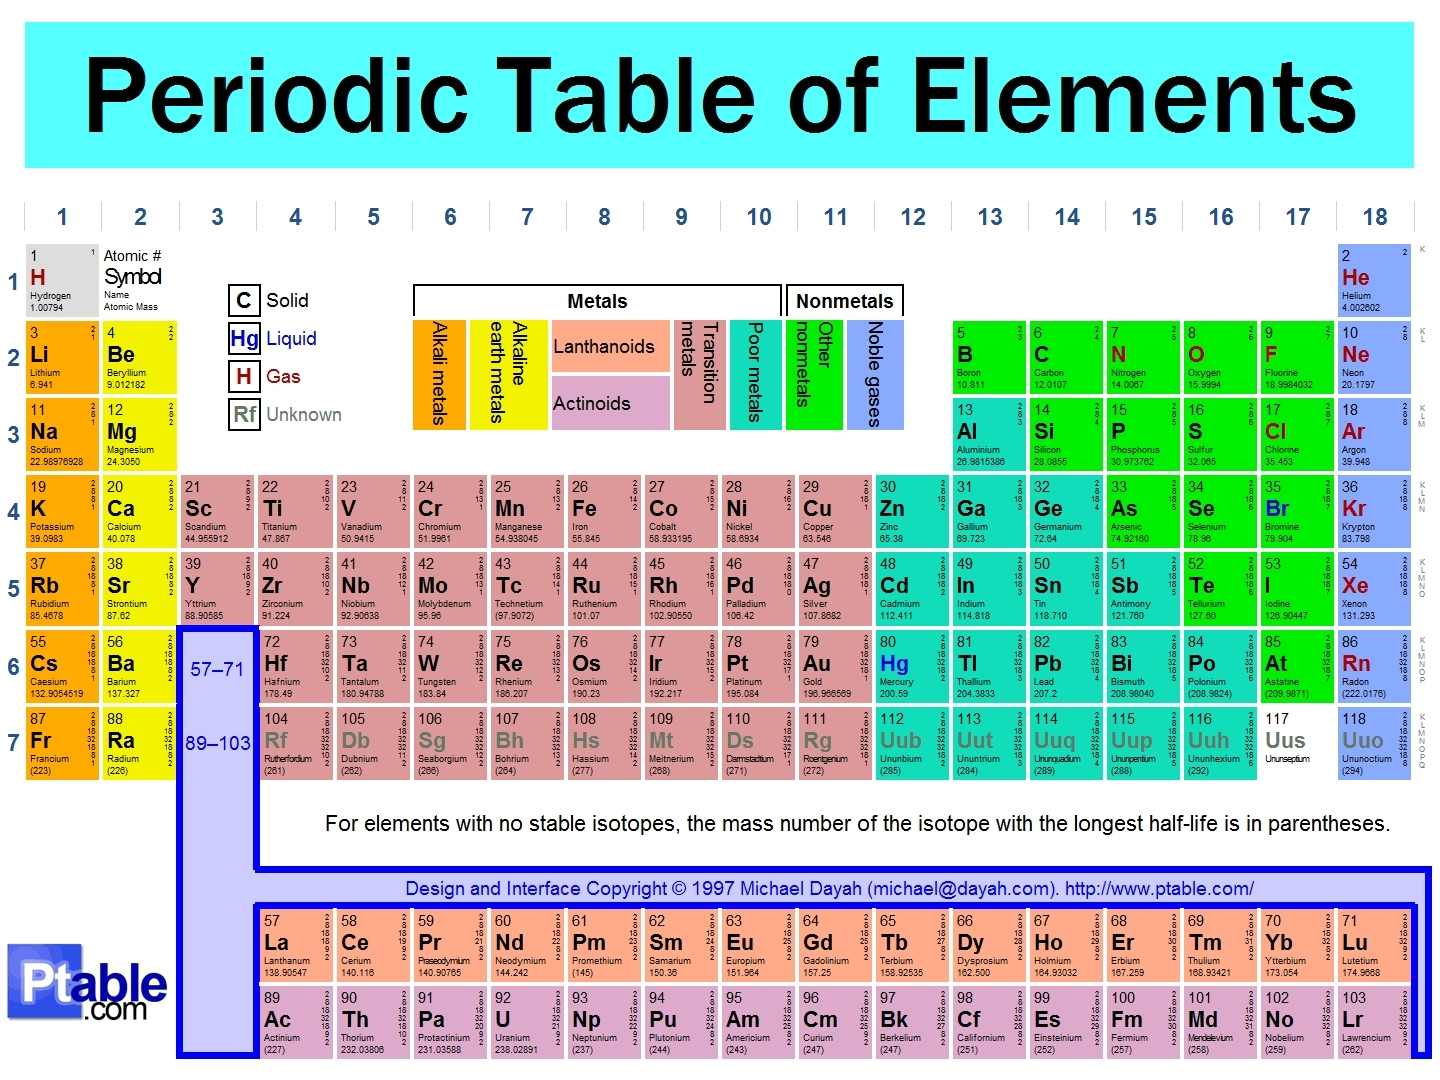 Periodic mesa, tabla of Element(: